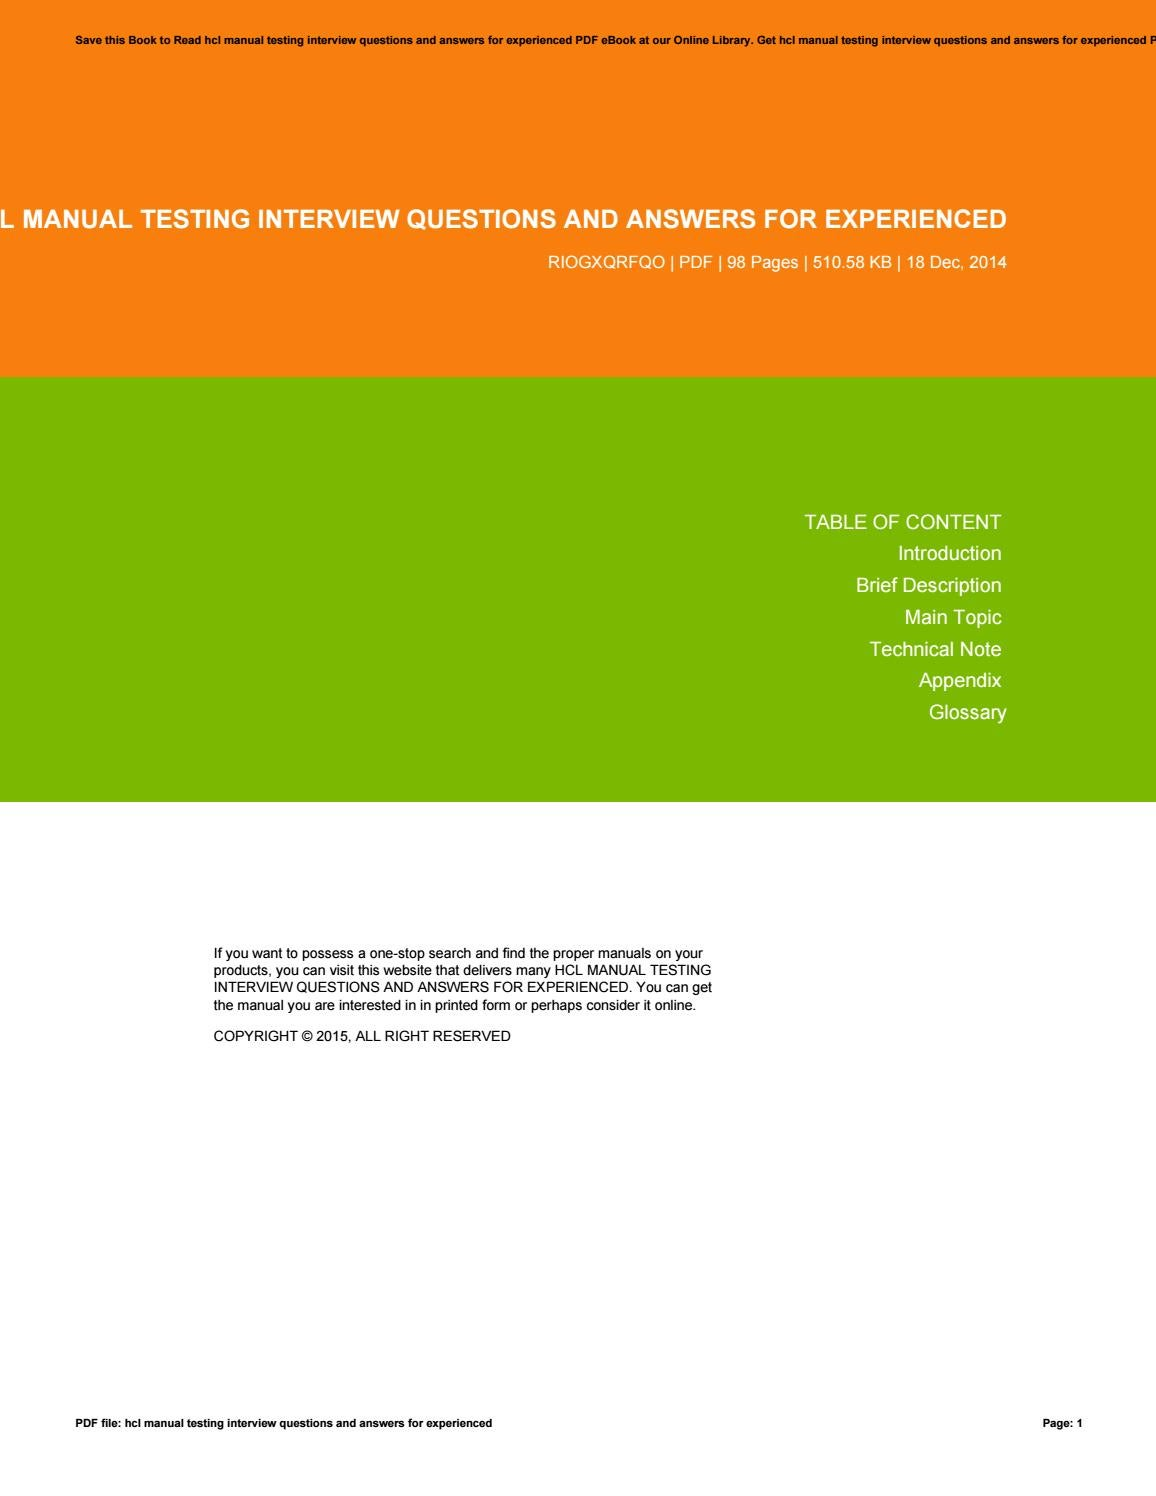 Hcl manual testing interview questions and answers for experienced by  ThomasChambers4575 - issuu